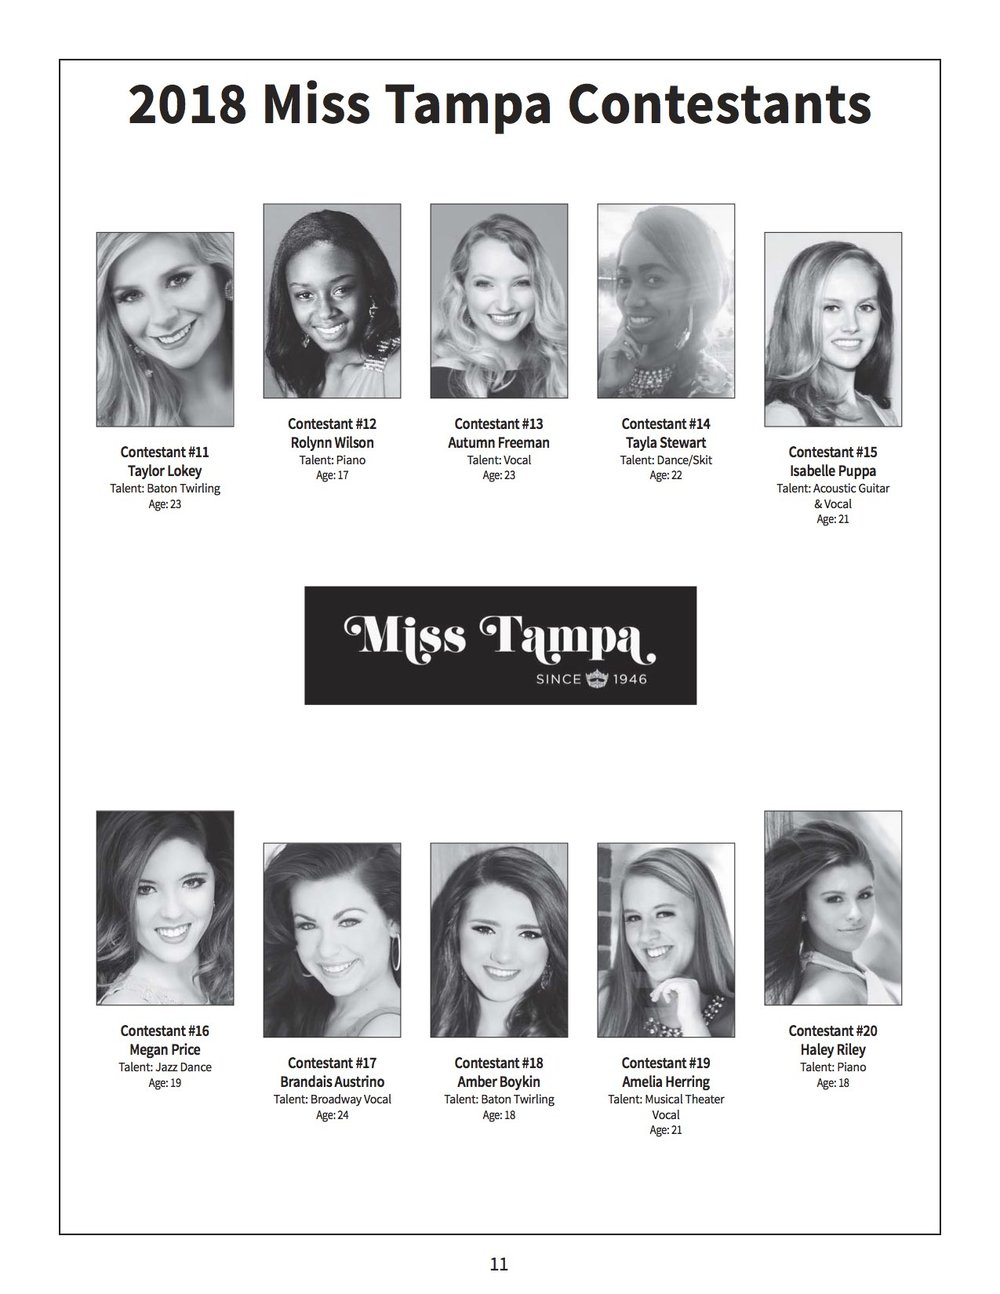 Miss Tampa 2018 Contestants final 1.30.18-b.jpg